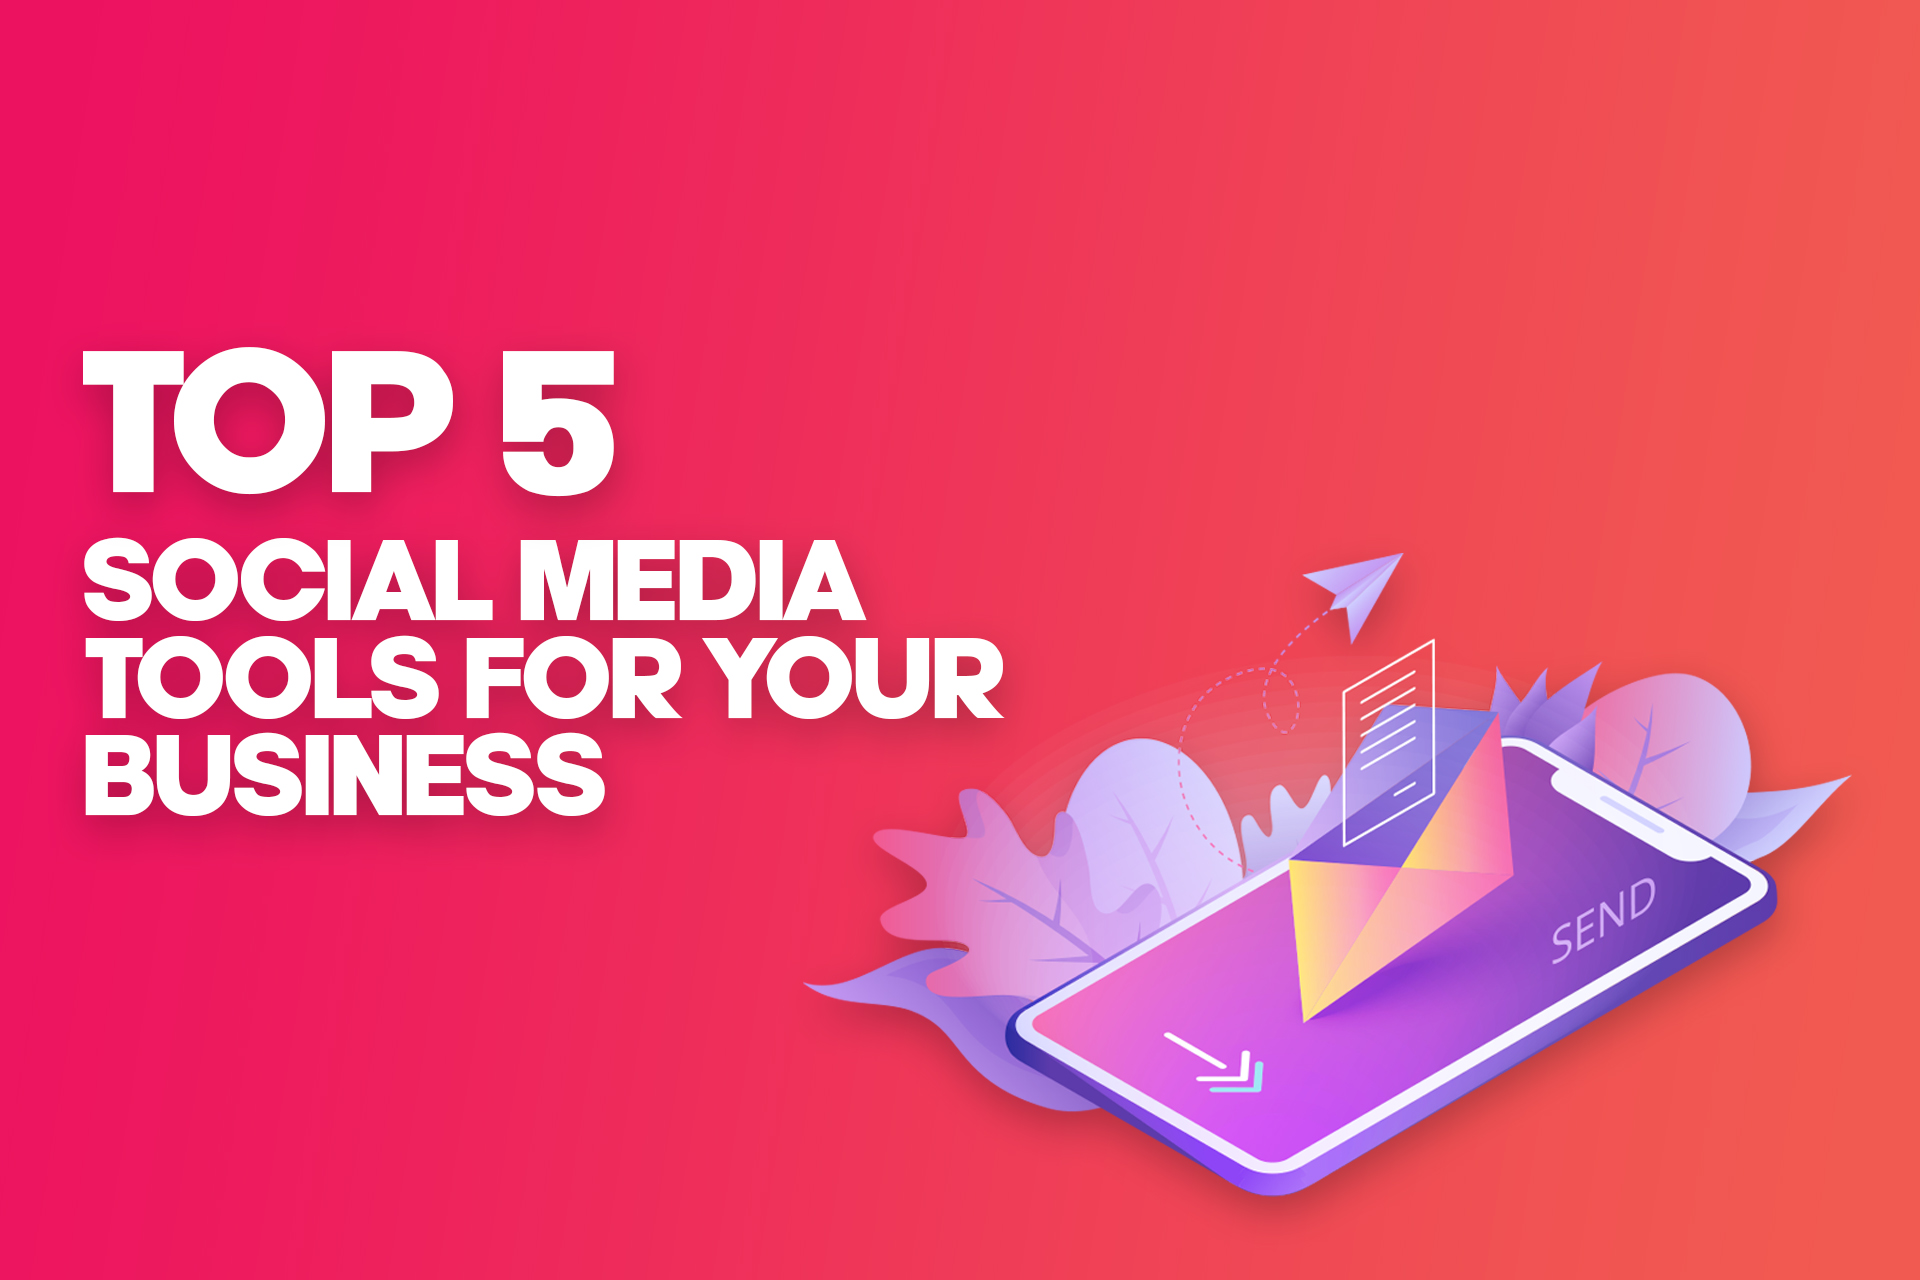 Top Social Media Marketing Tools for your Business